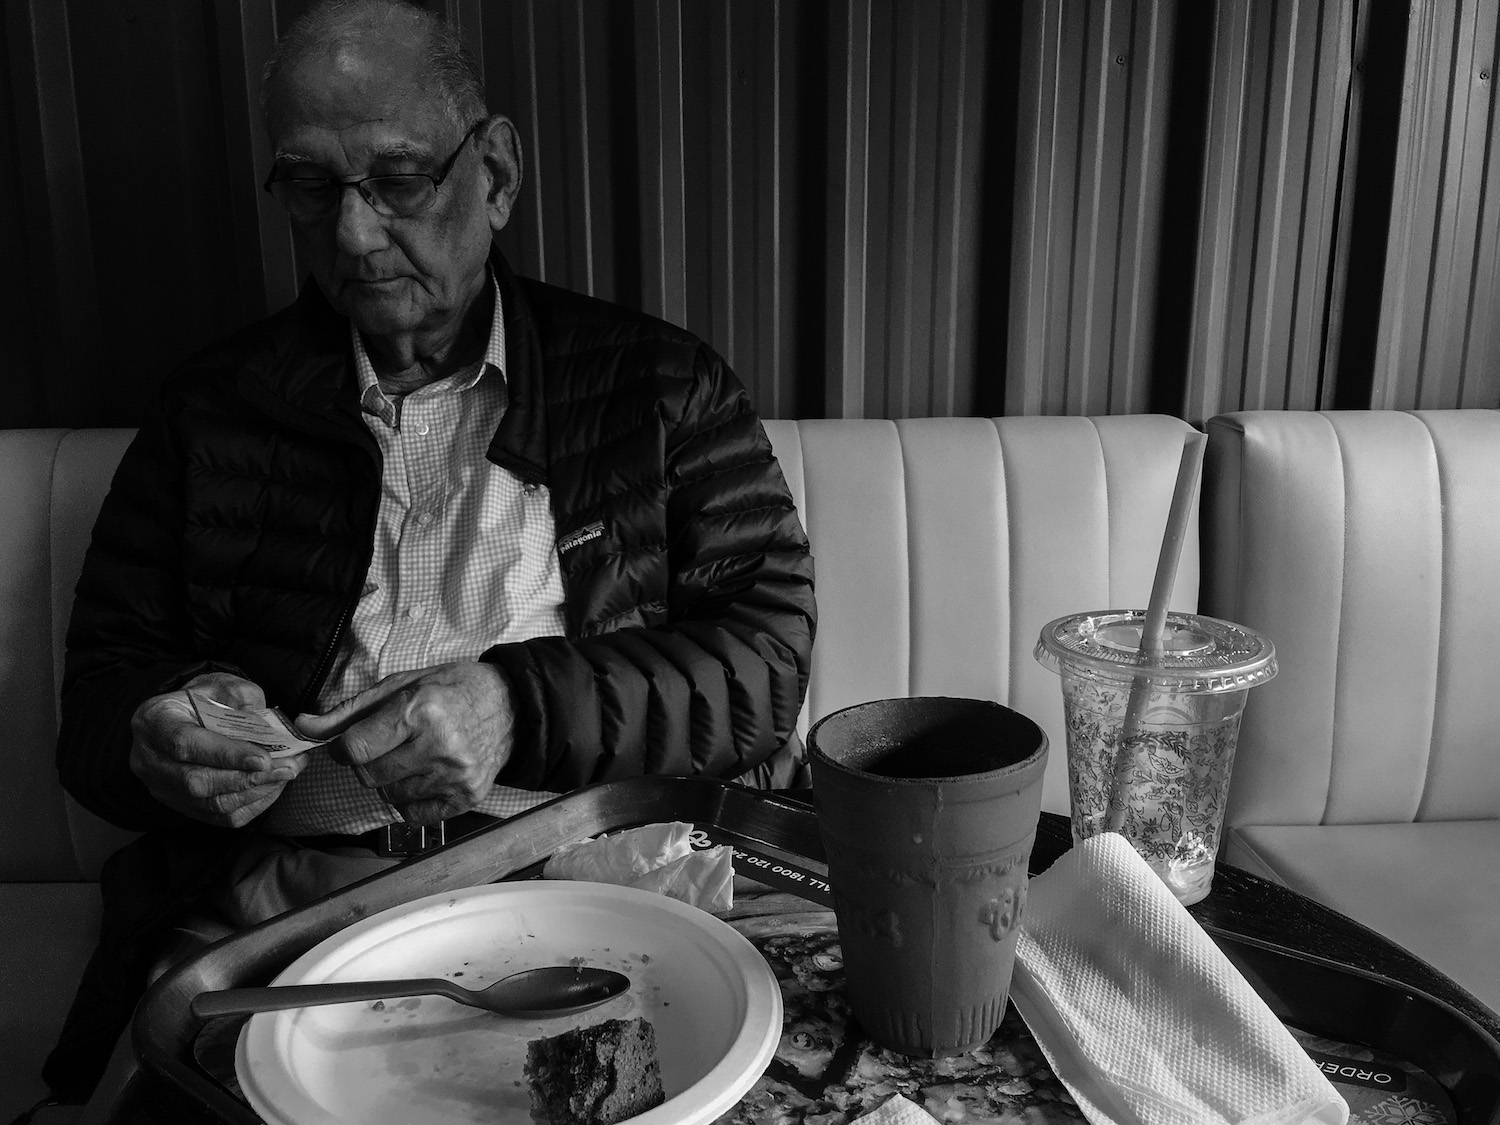 Dad looking stylish during a chai break in Chaayos